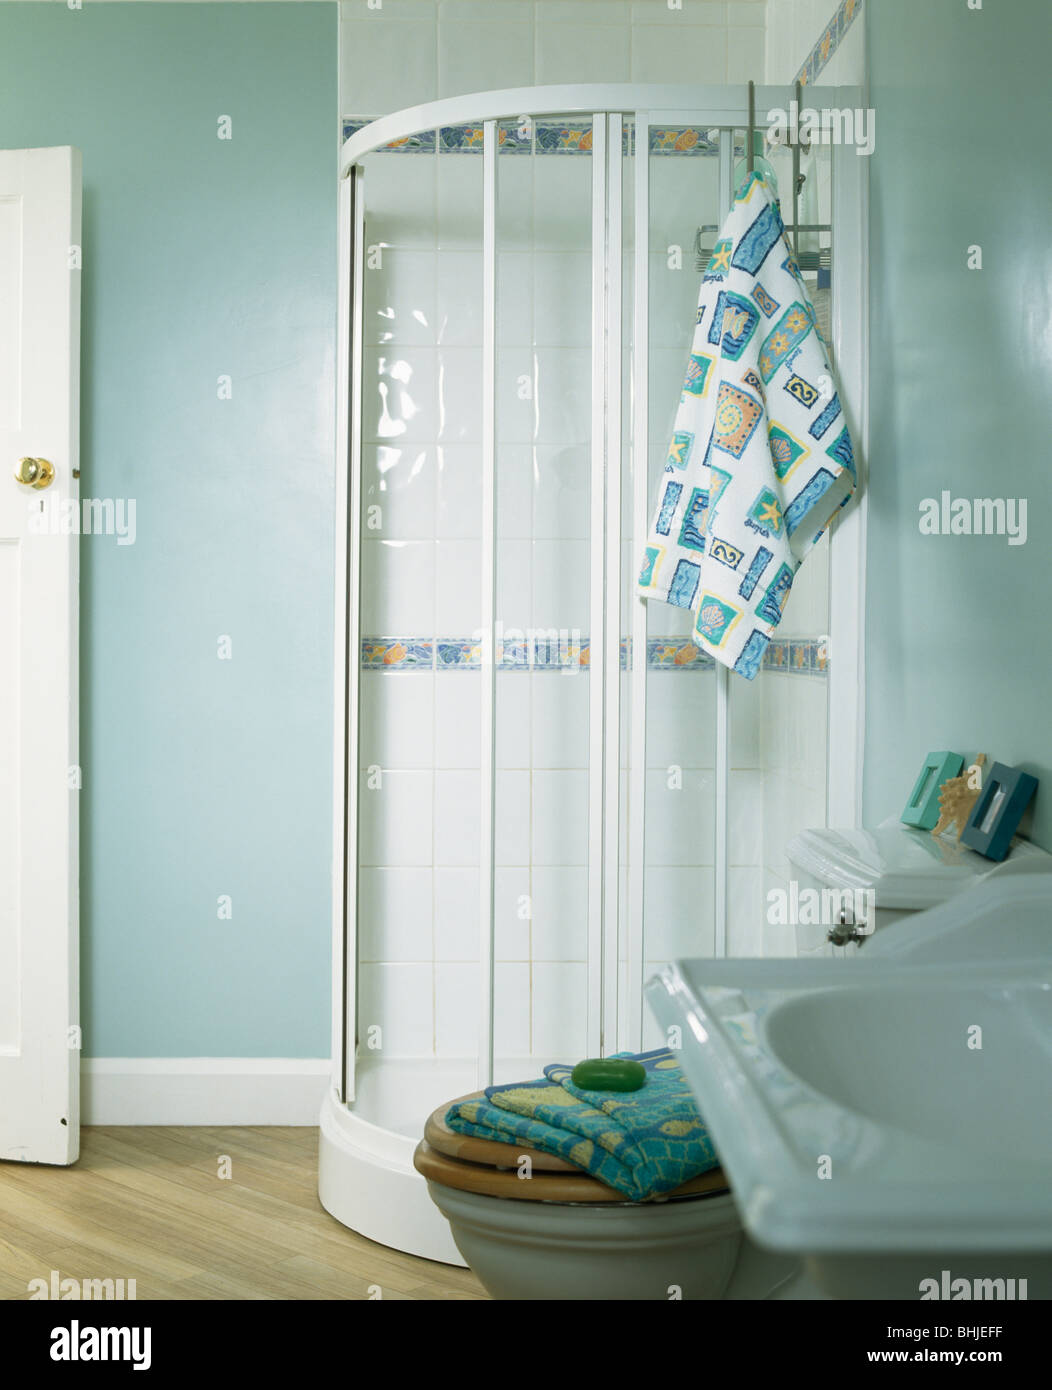 Interiors Showers Town Traditional Stock Photos & Interiors Showers ...